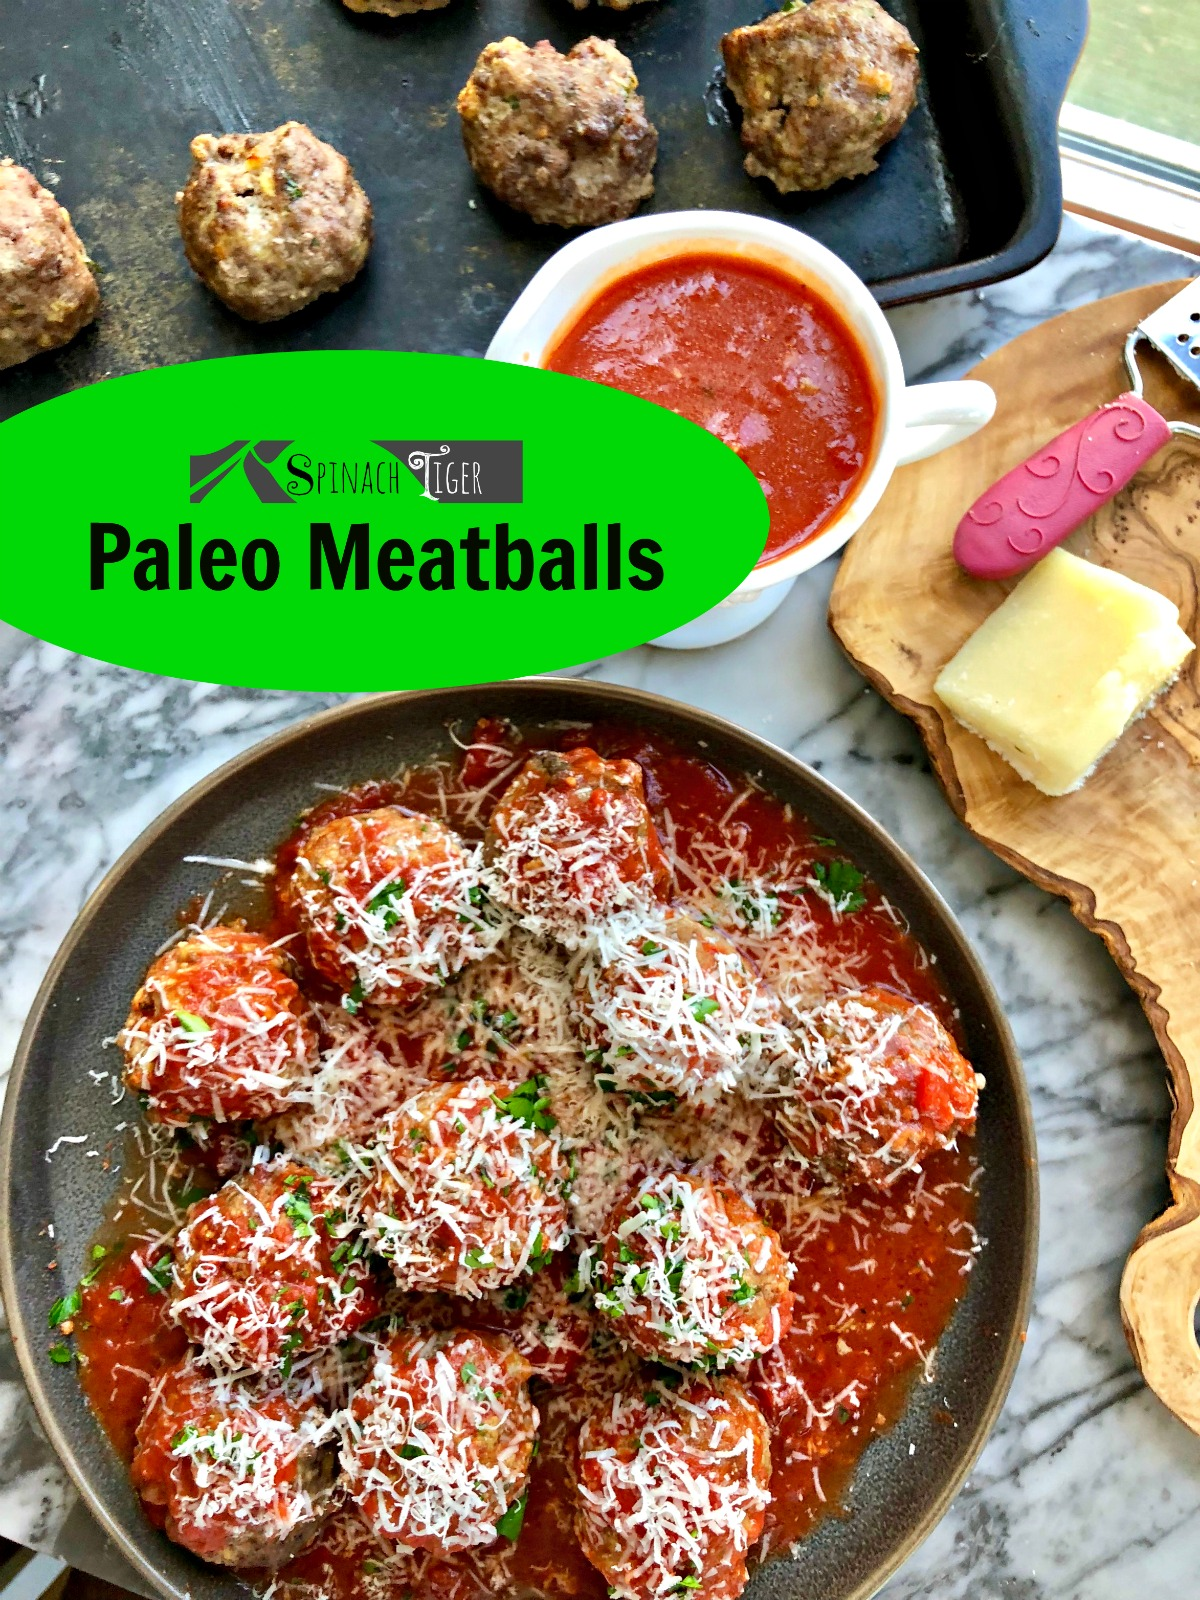 Paleo Meatballs from Spinach TIger